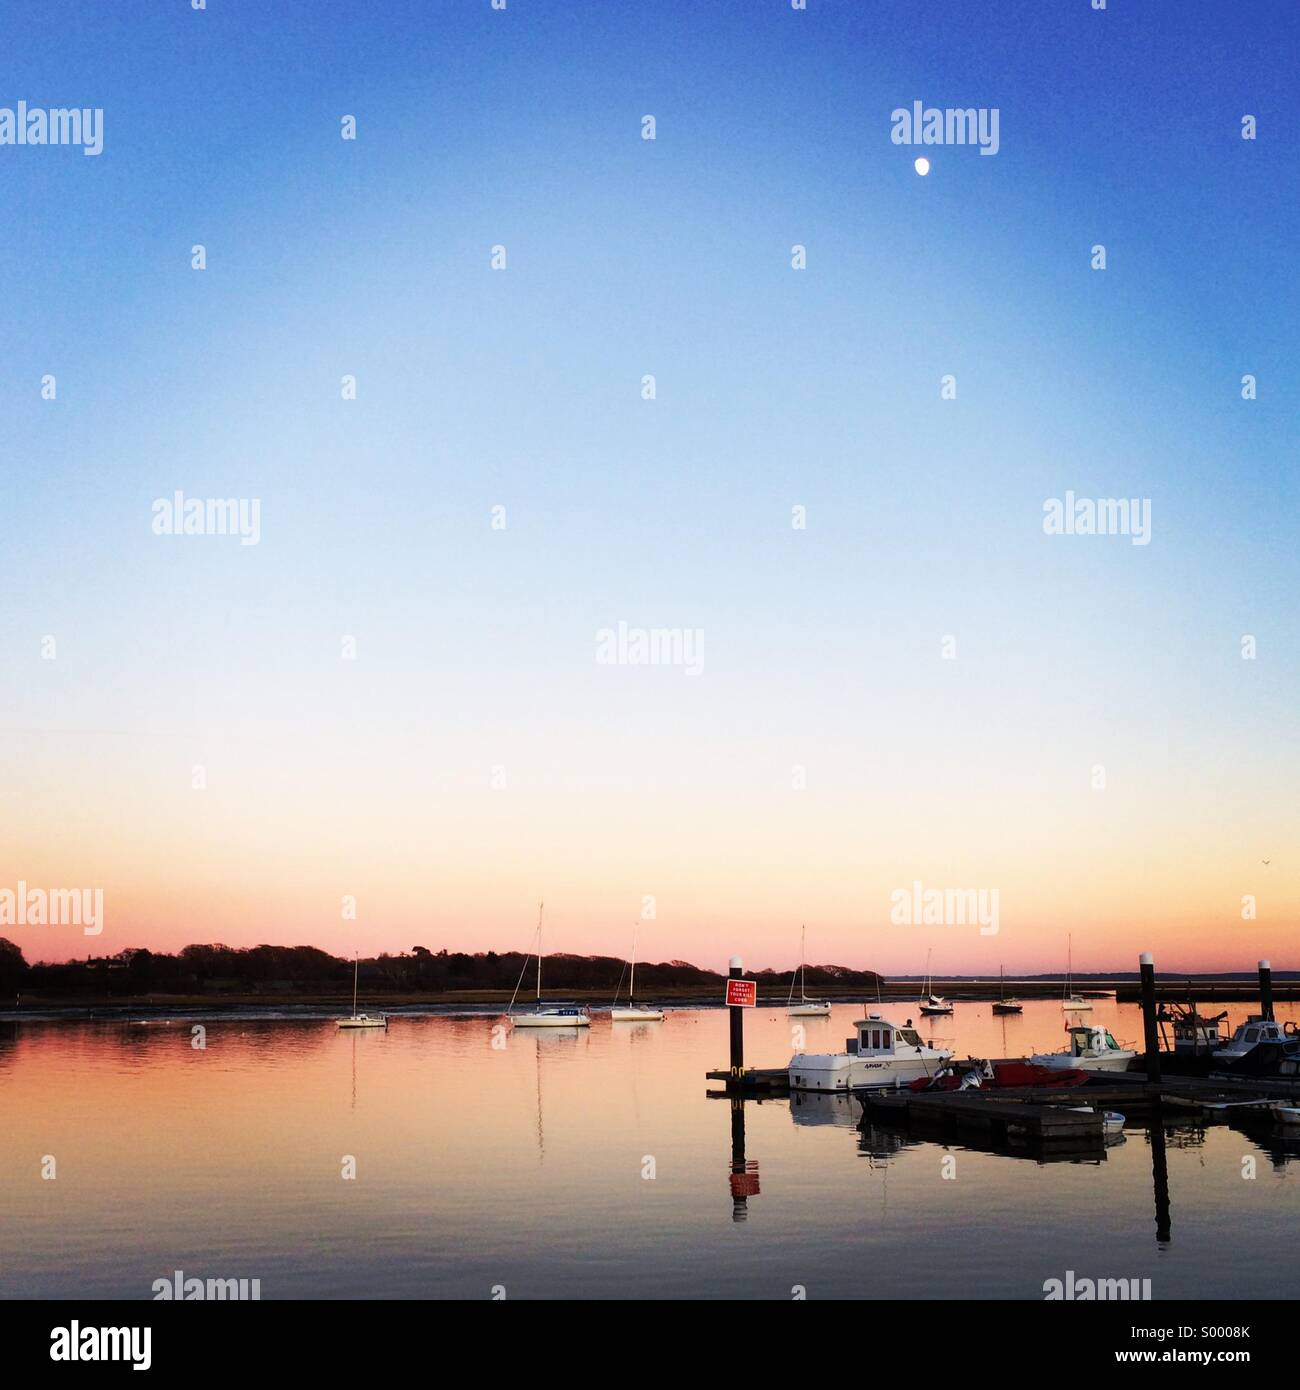 Sunset at the Royal Yacht Club at Lymington.  The moon rises as the sun sets and the water turns to glass. Sailboats - Stock Image